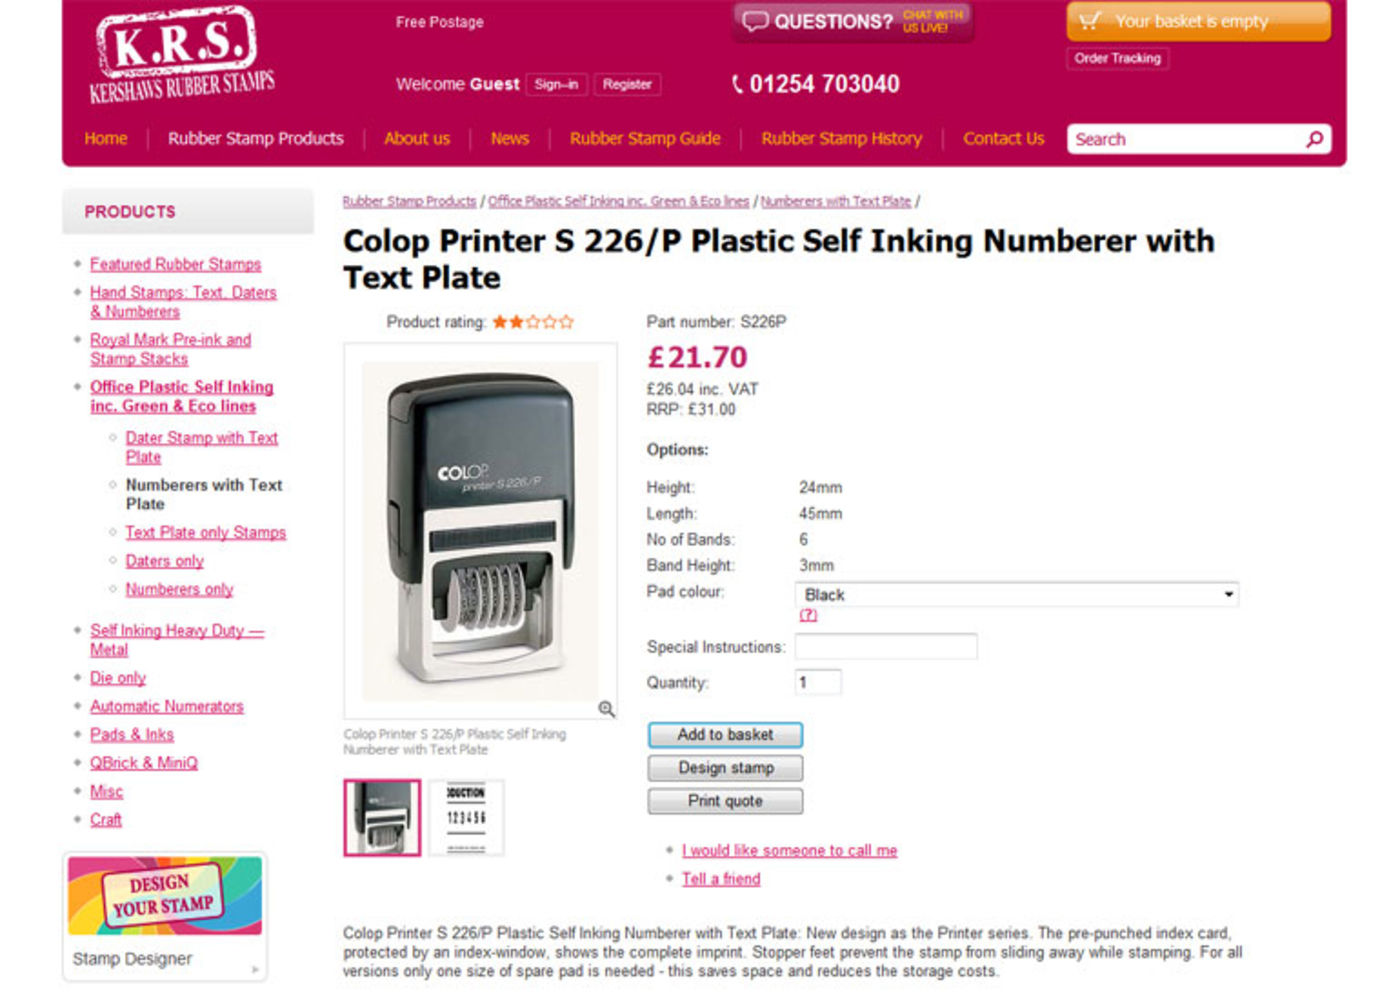 Kershaw's Rubber Stamps Product page